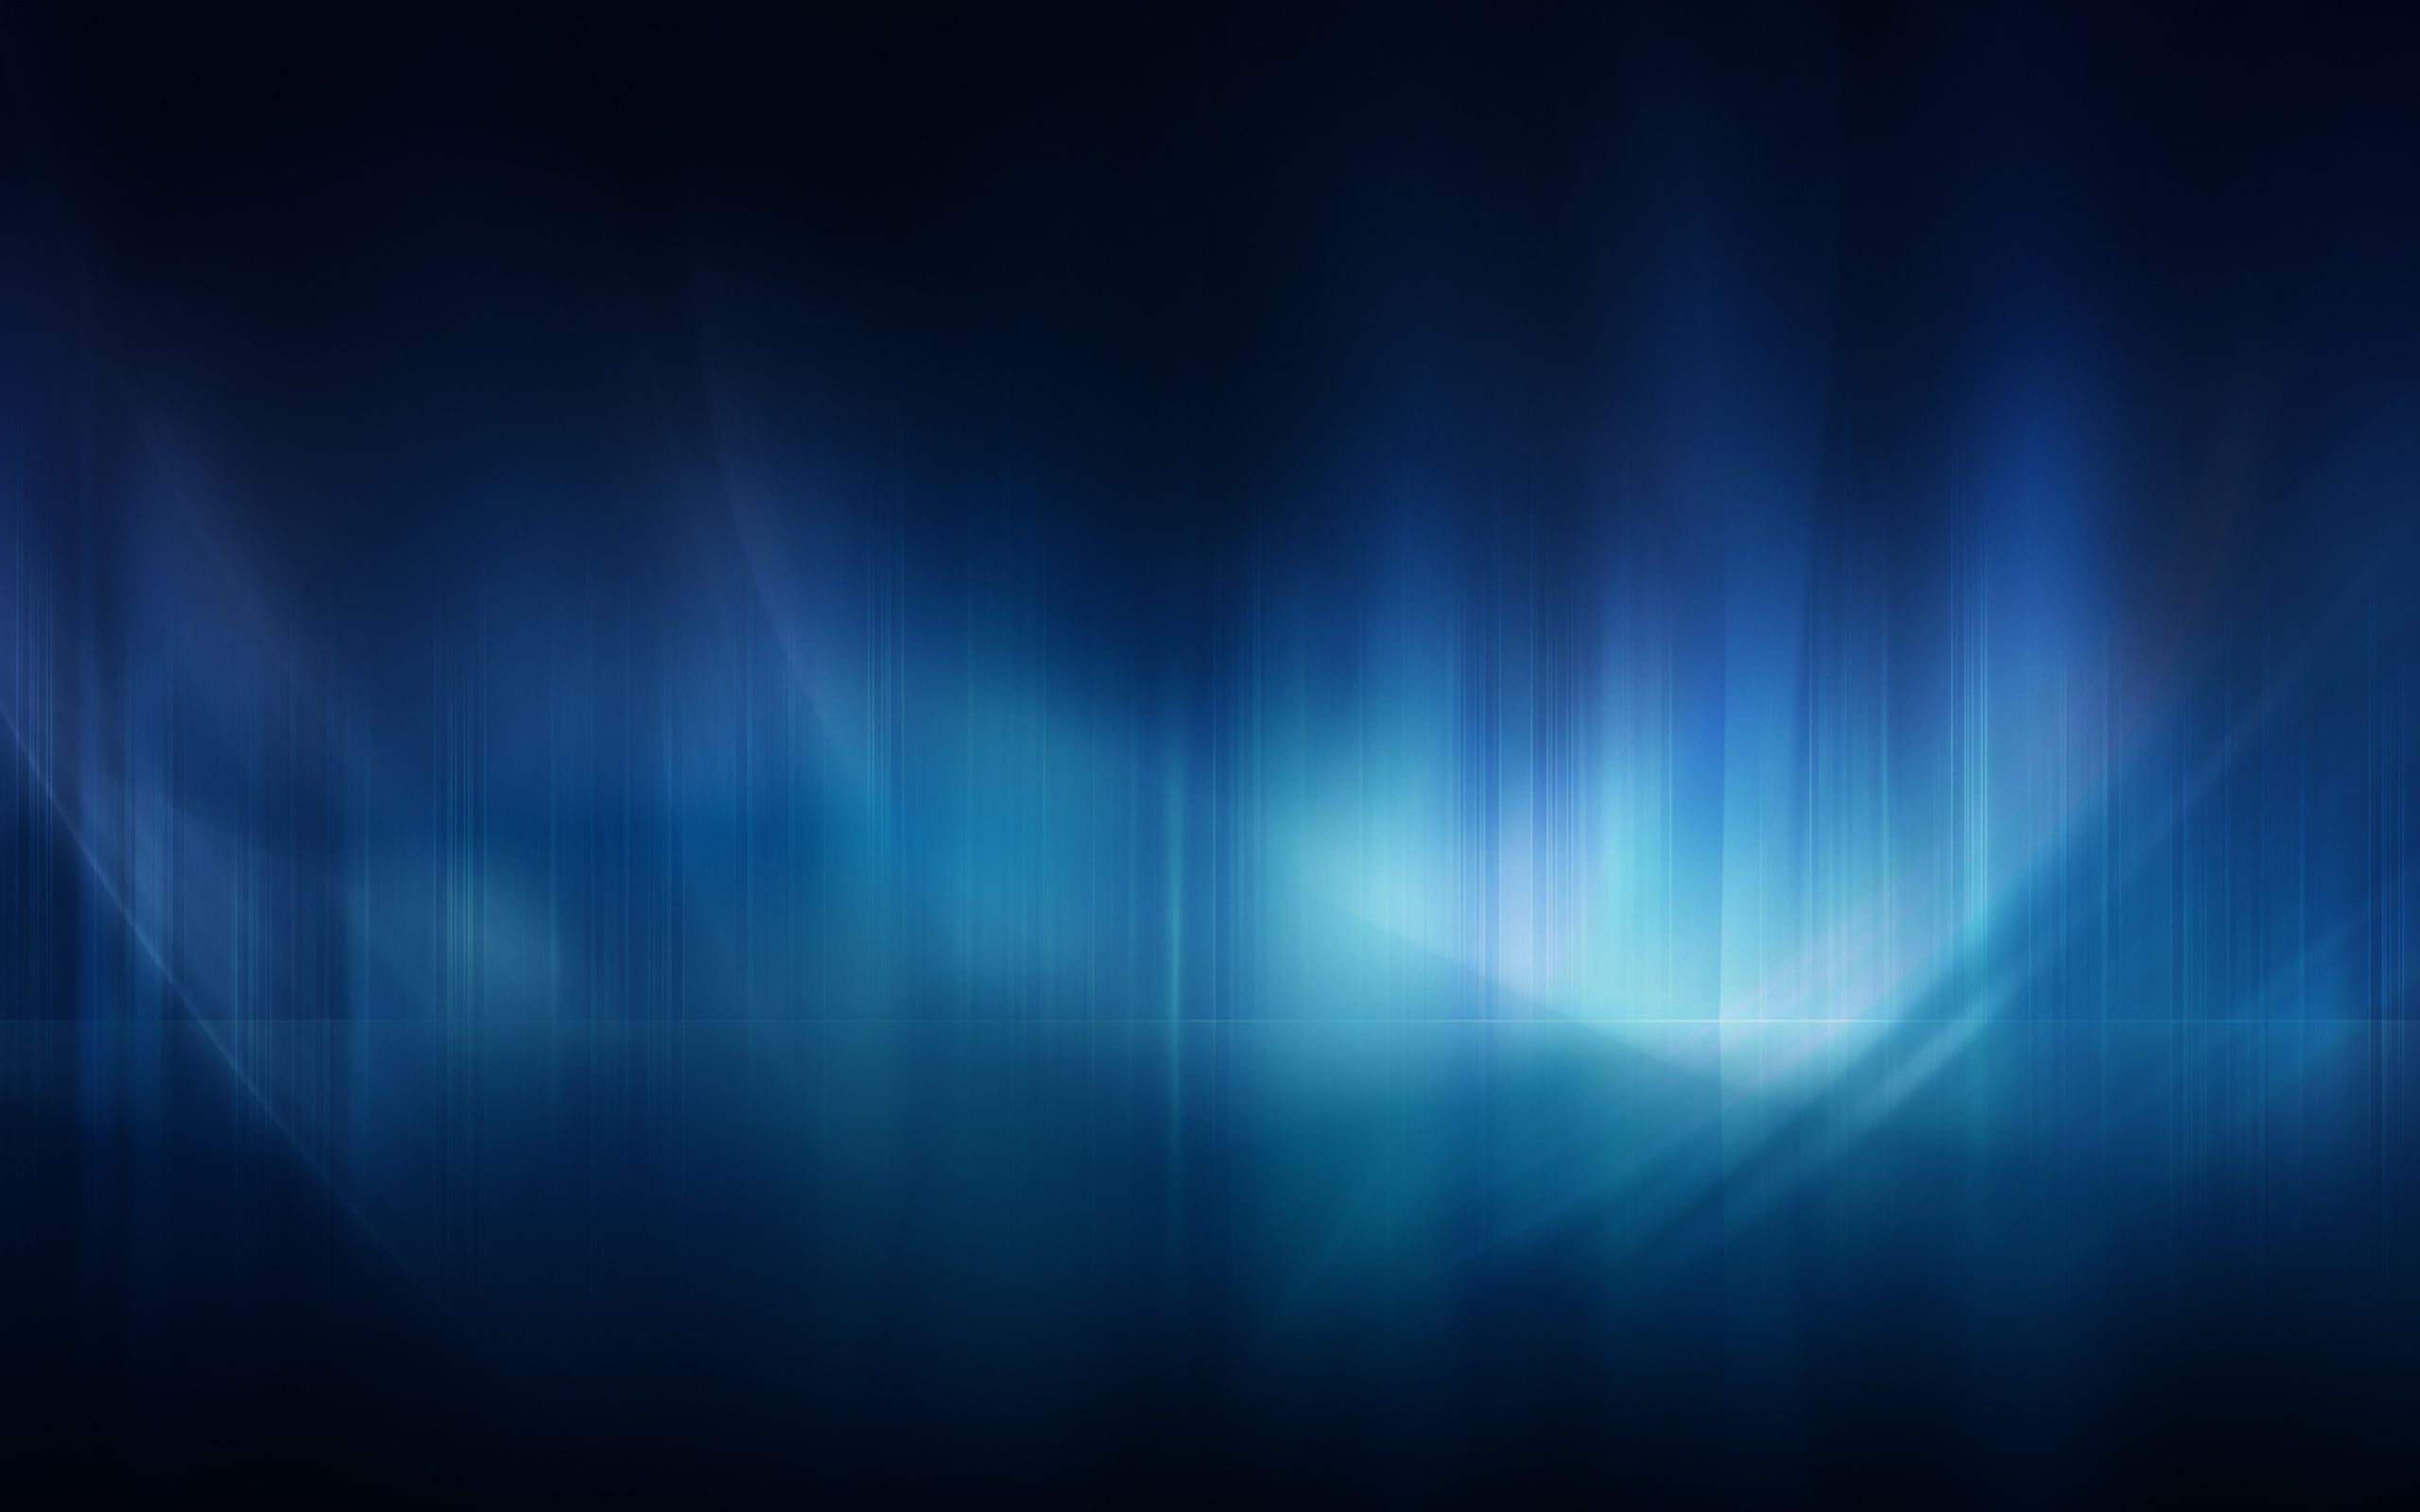 Black And Blue Backgrounds